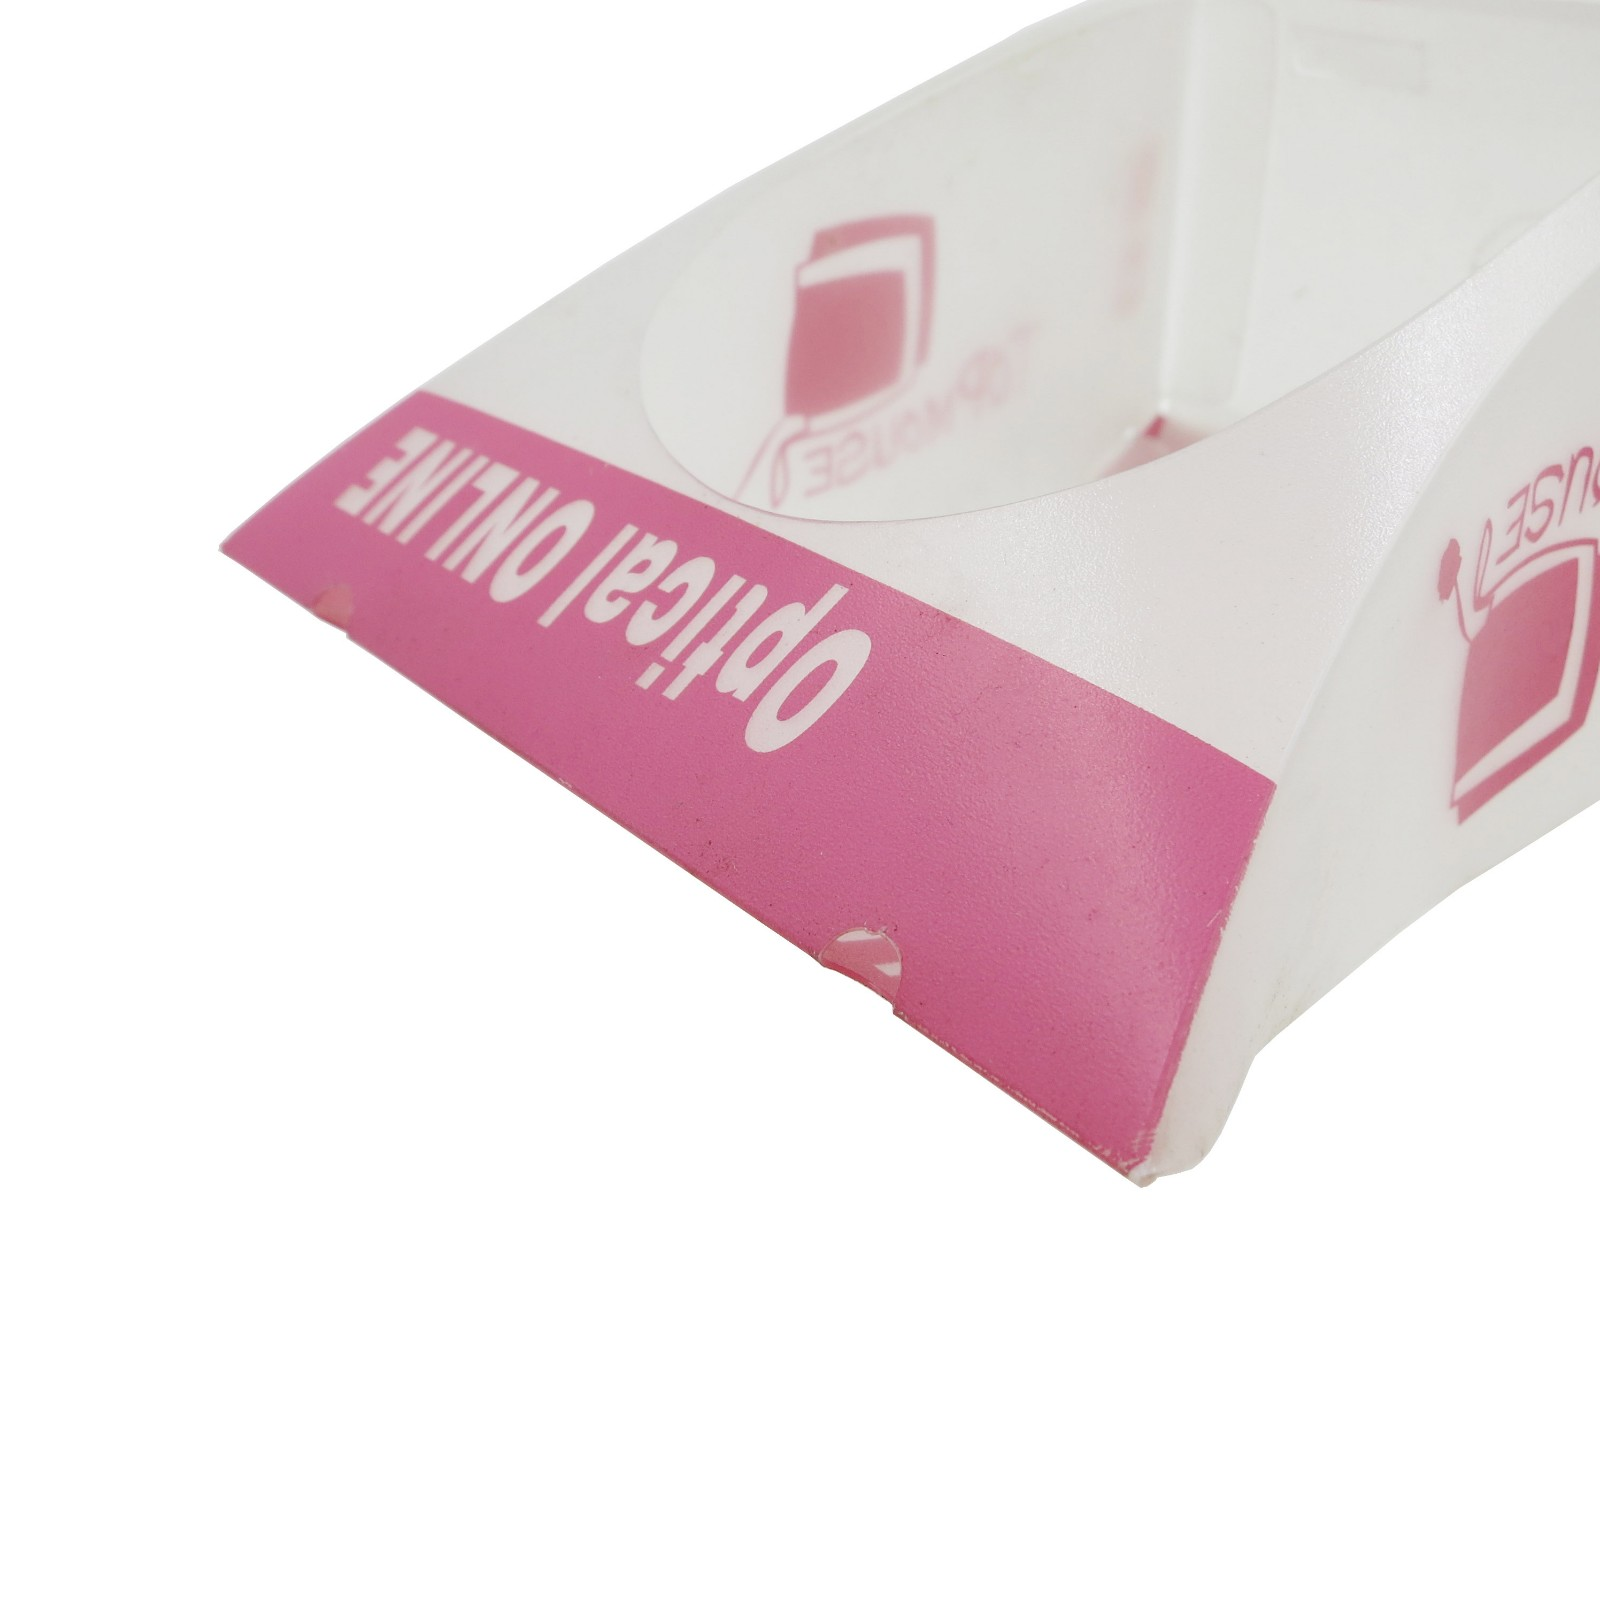 Yijianxing Plastic Products snap plastic box packaging for wholesale for packing-6